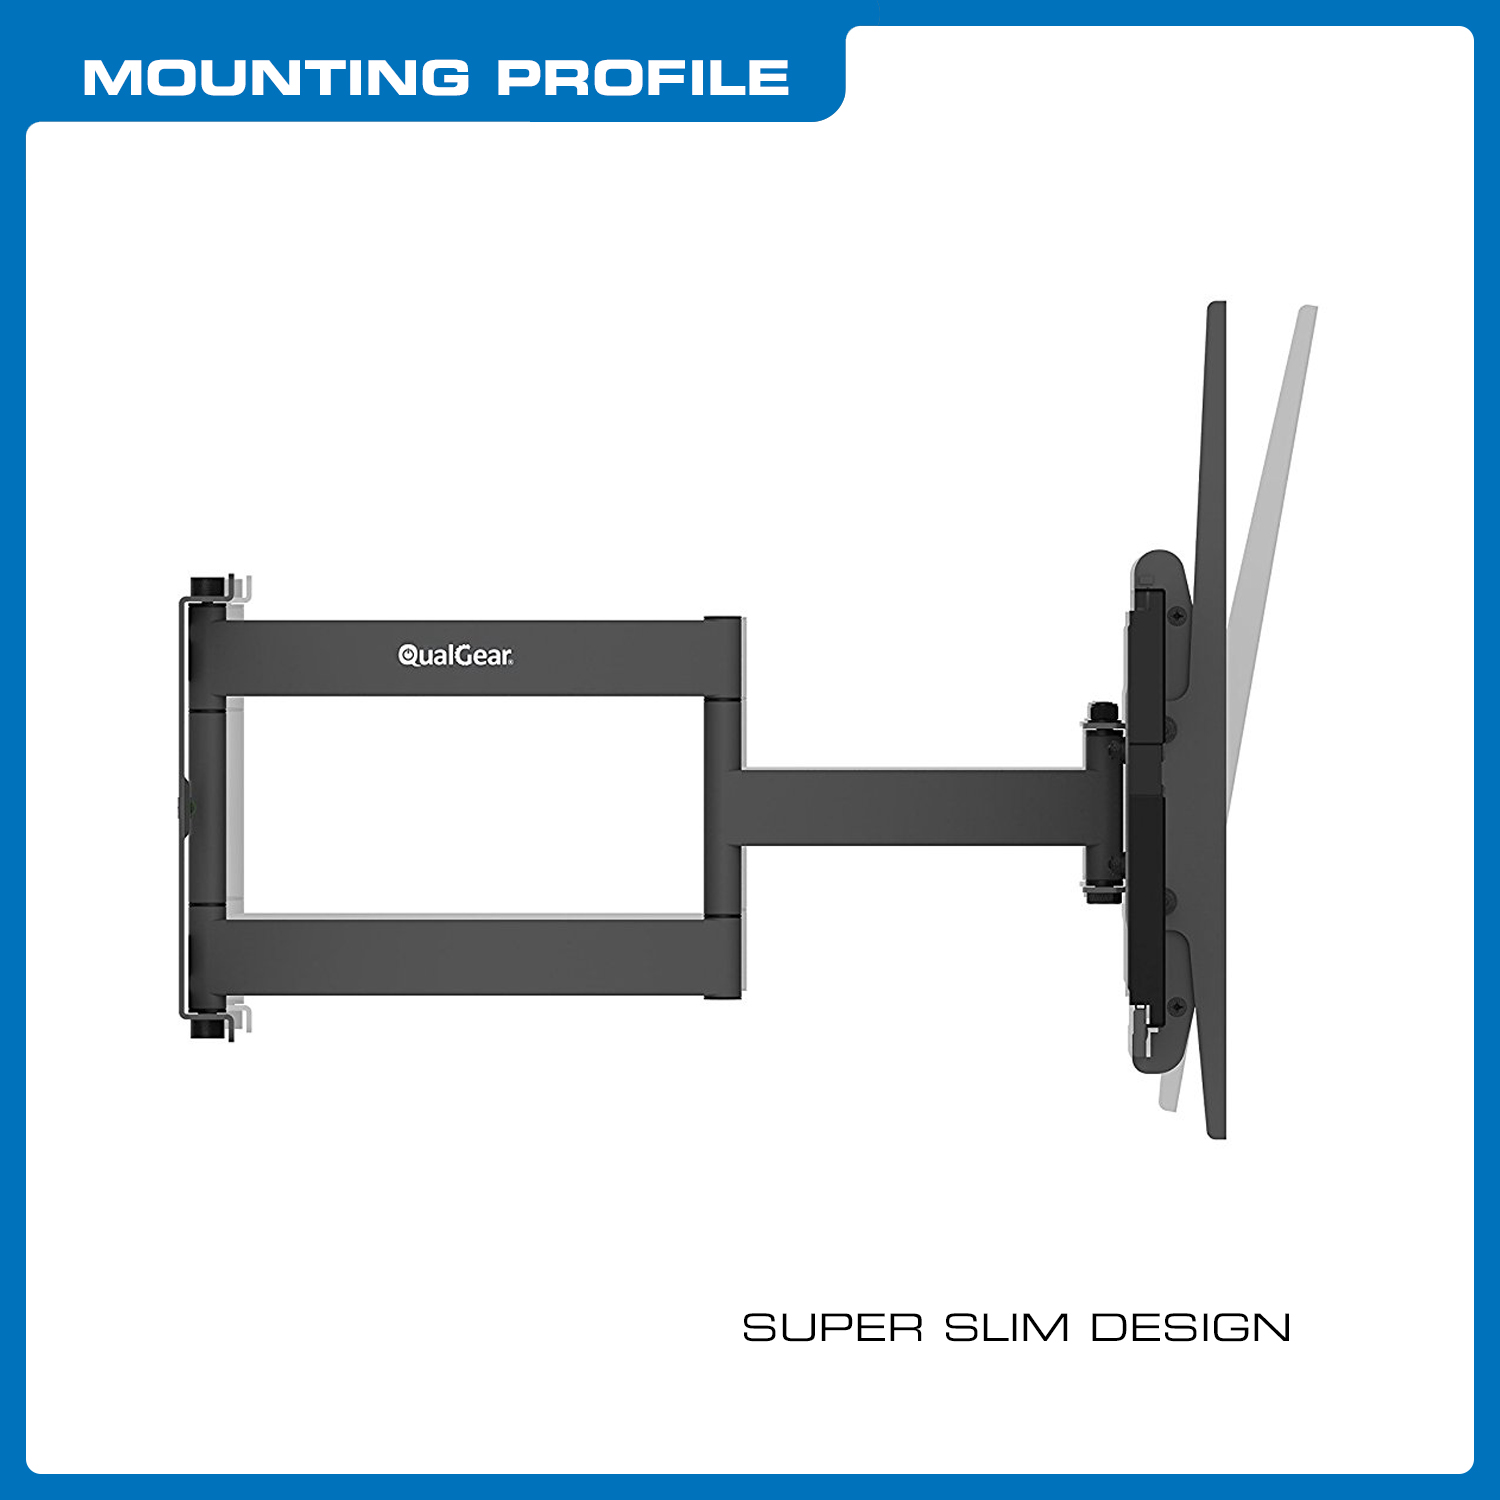 QualGear® Heavy Duty Full Motion TV Mount For 37-70 Inch Flat Panel and Curved TVs, Black (QG-TM-032-BLK) [UL Listed]